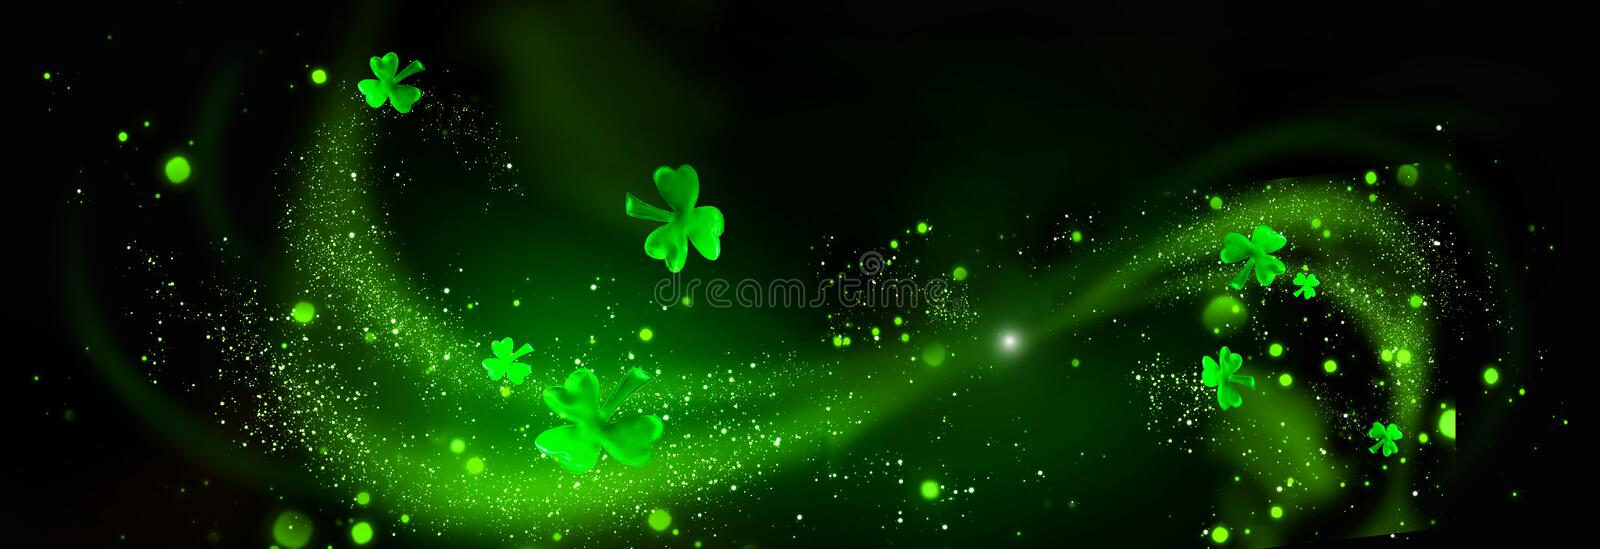 St. Patrick`s Day. Green shamrock leaves over black background vector illustration